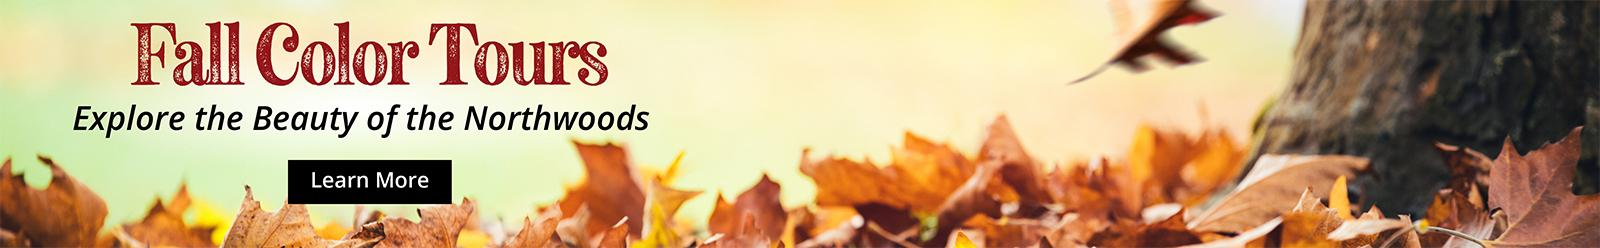 Fall-Color-Tours-Banner